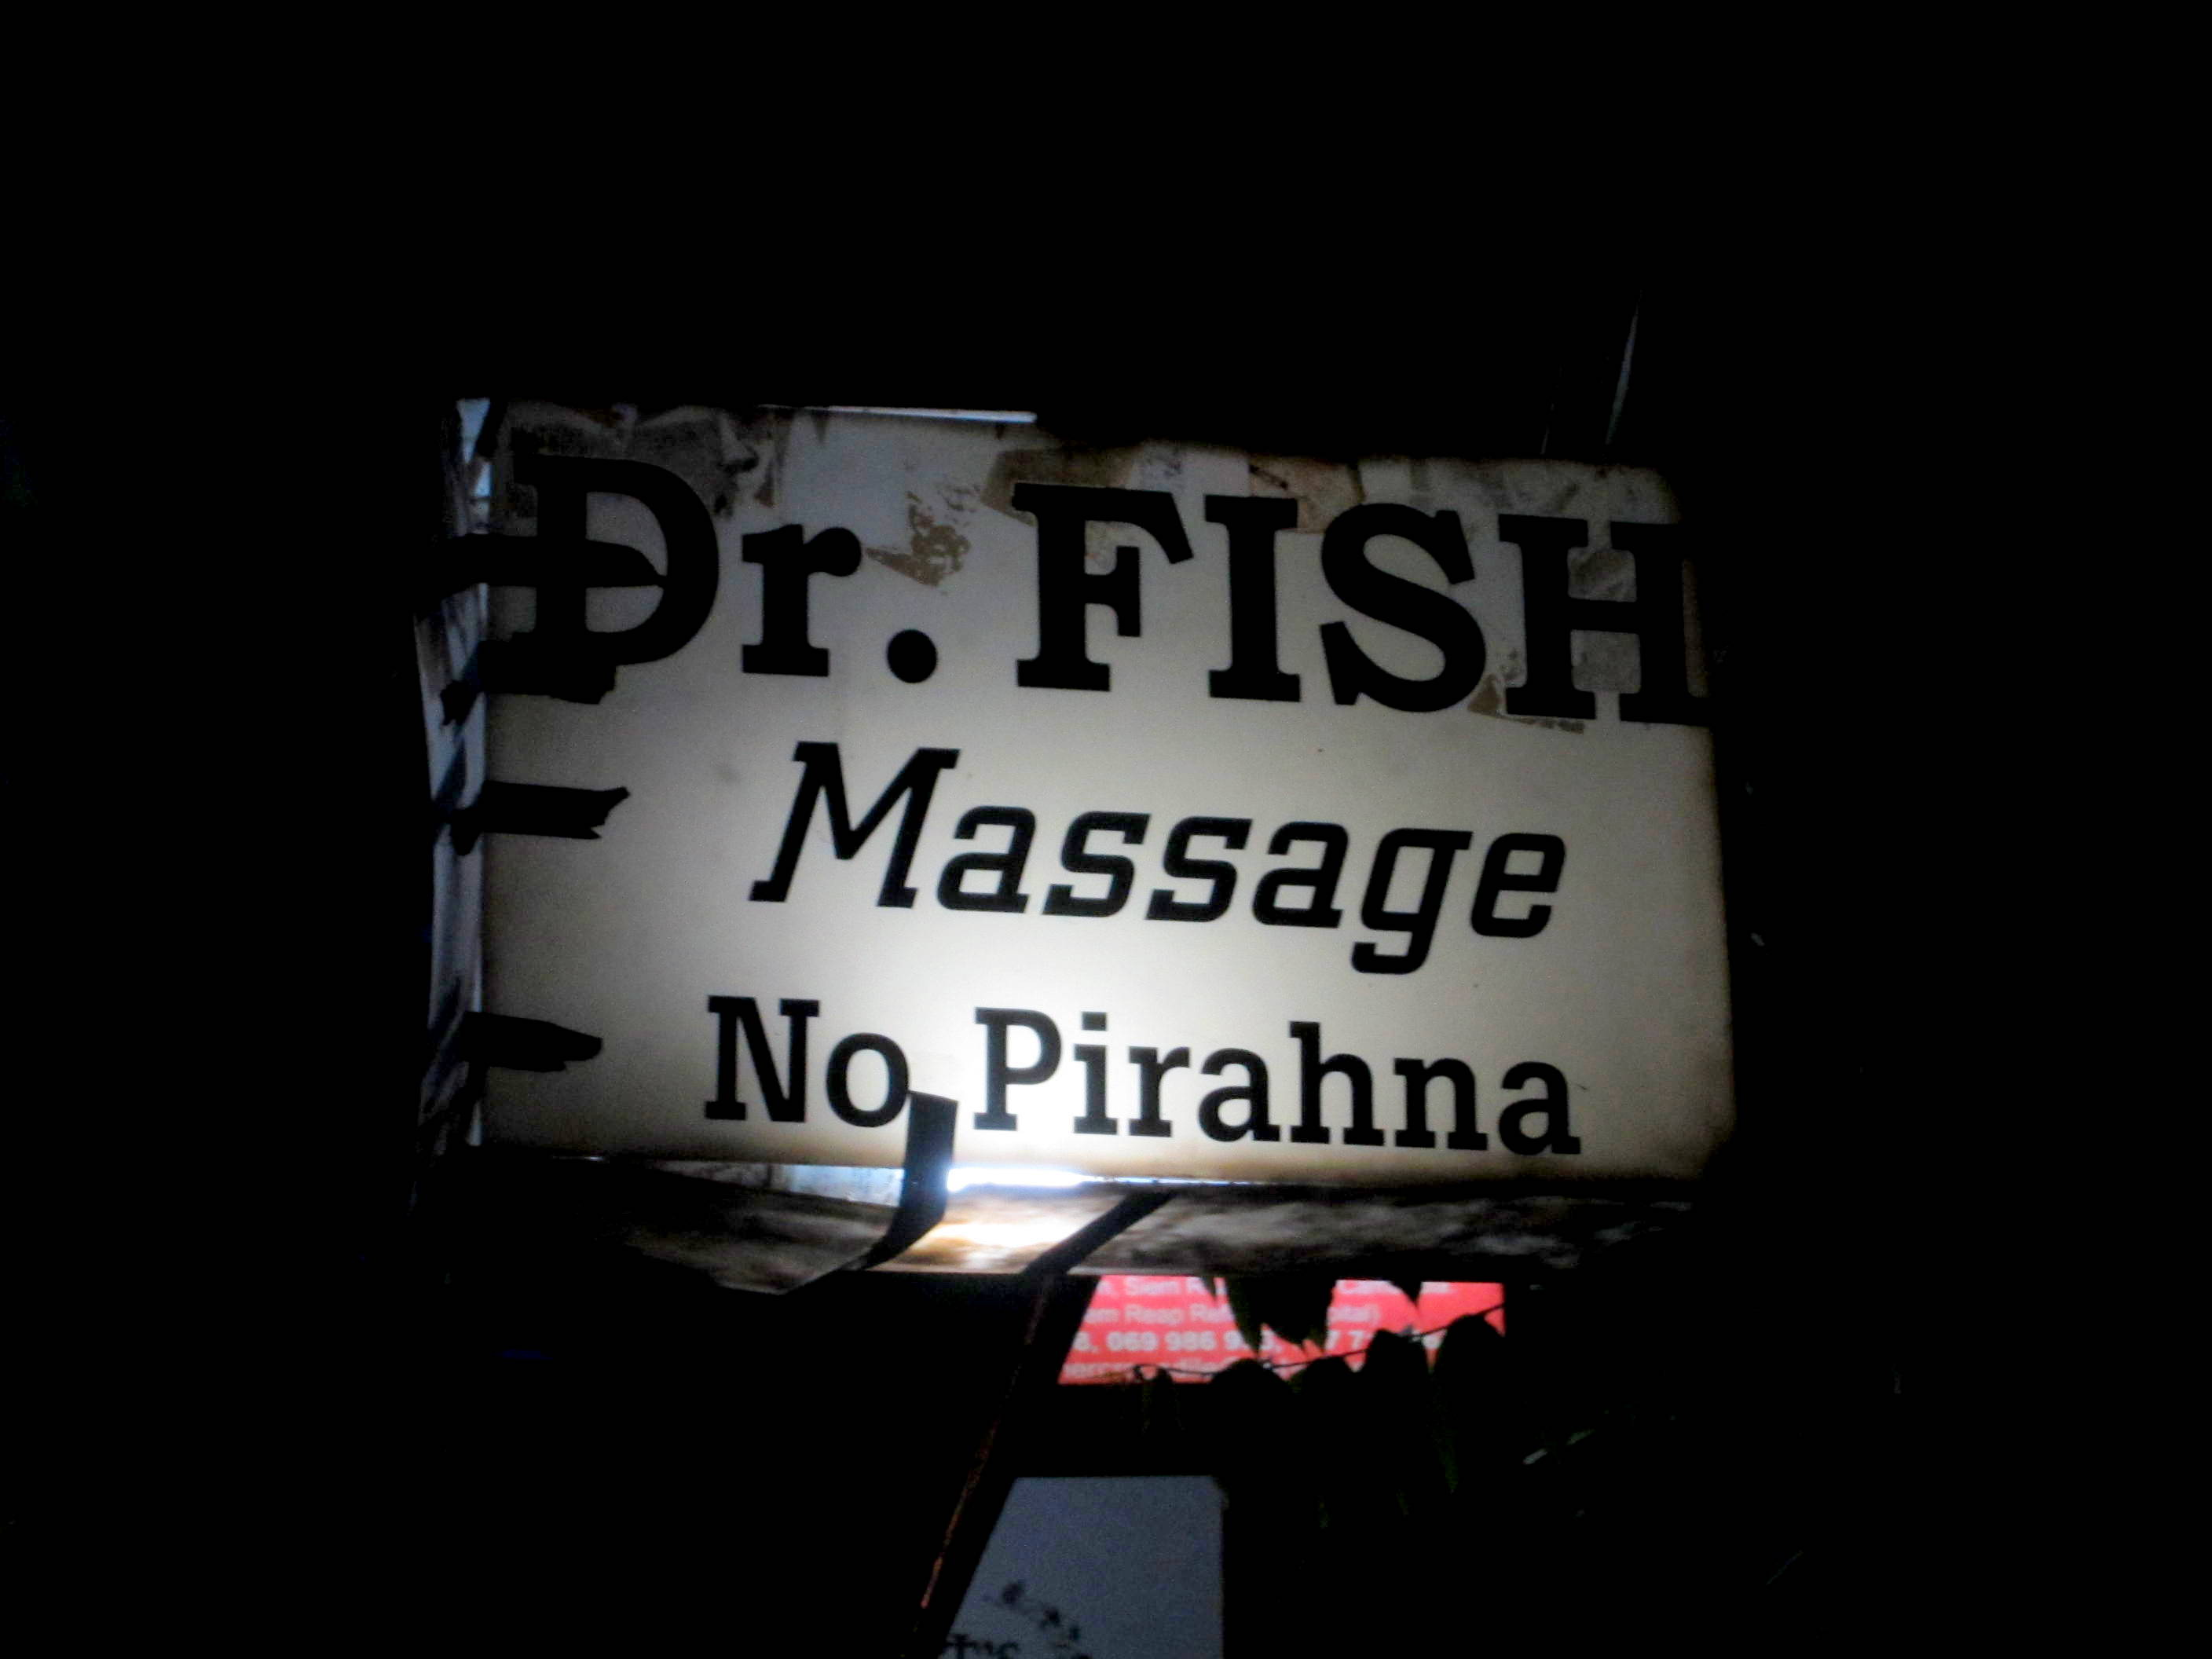 Don't worry, no piranhas in THIS massage. Siem Reap, Cambodia.